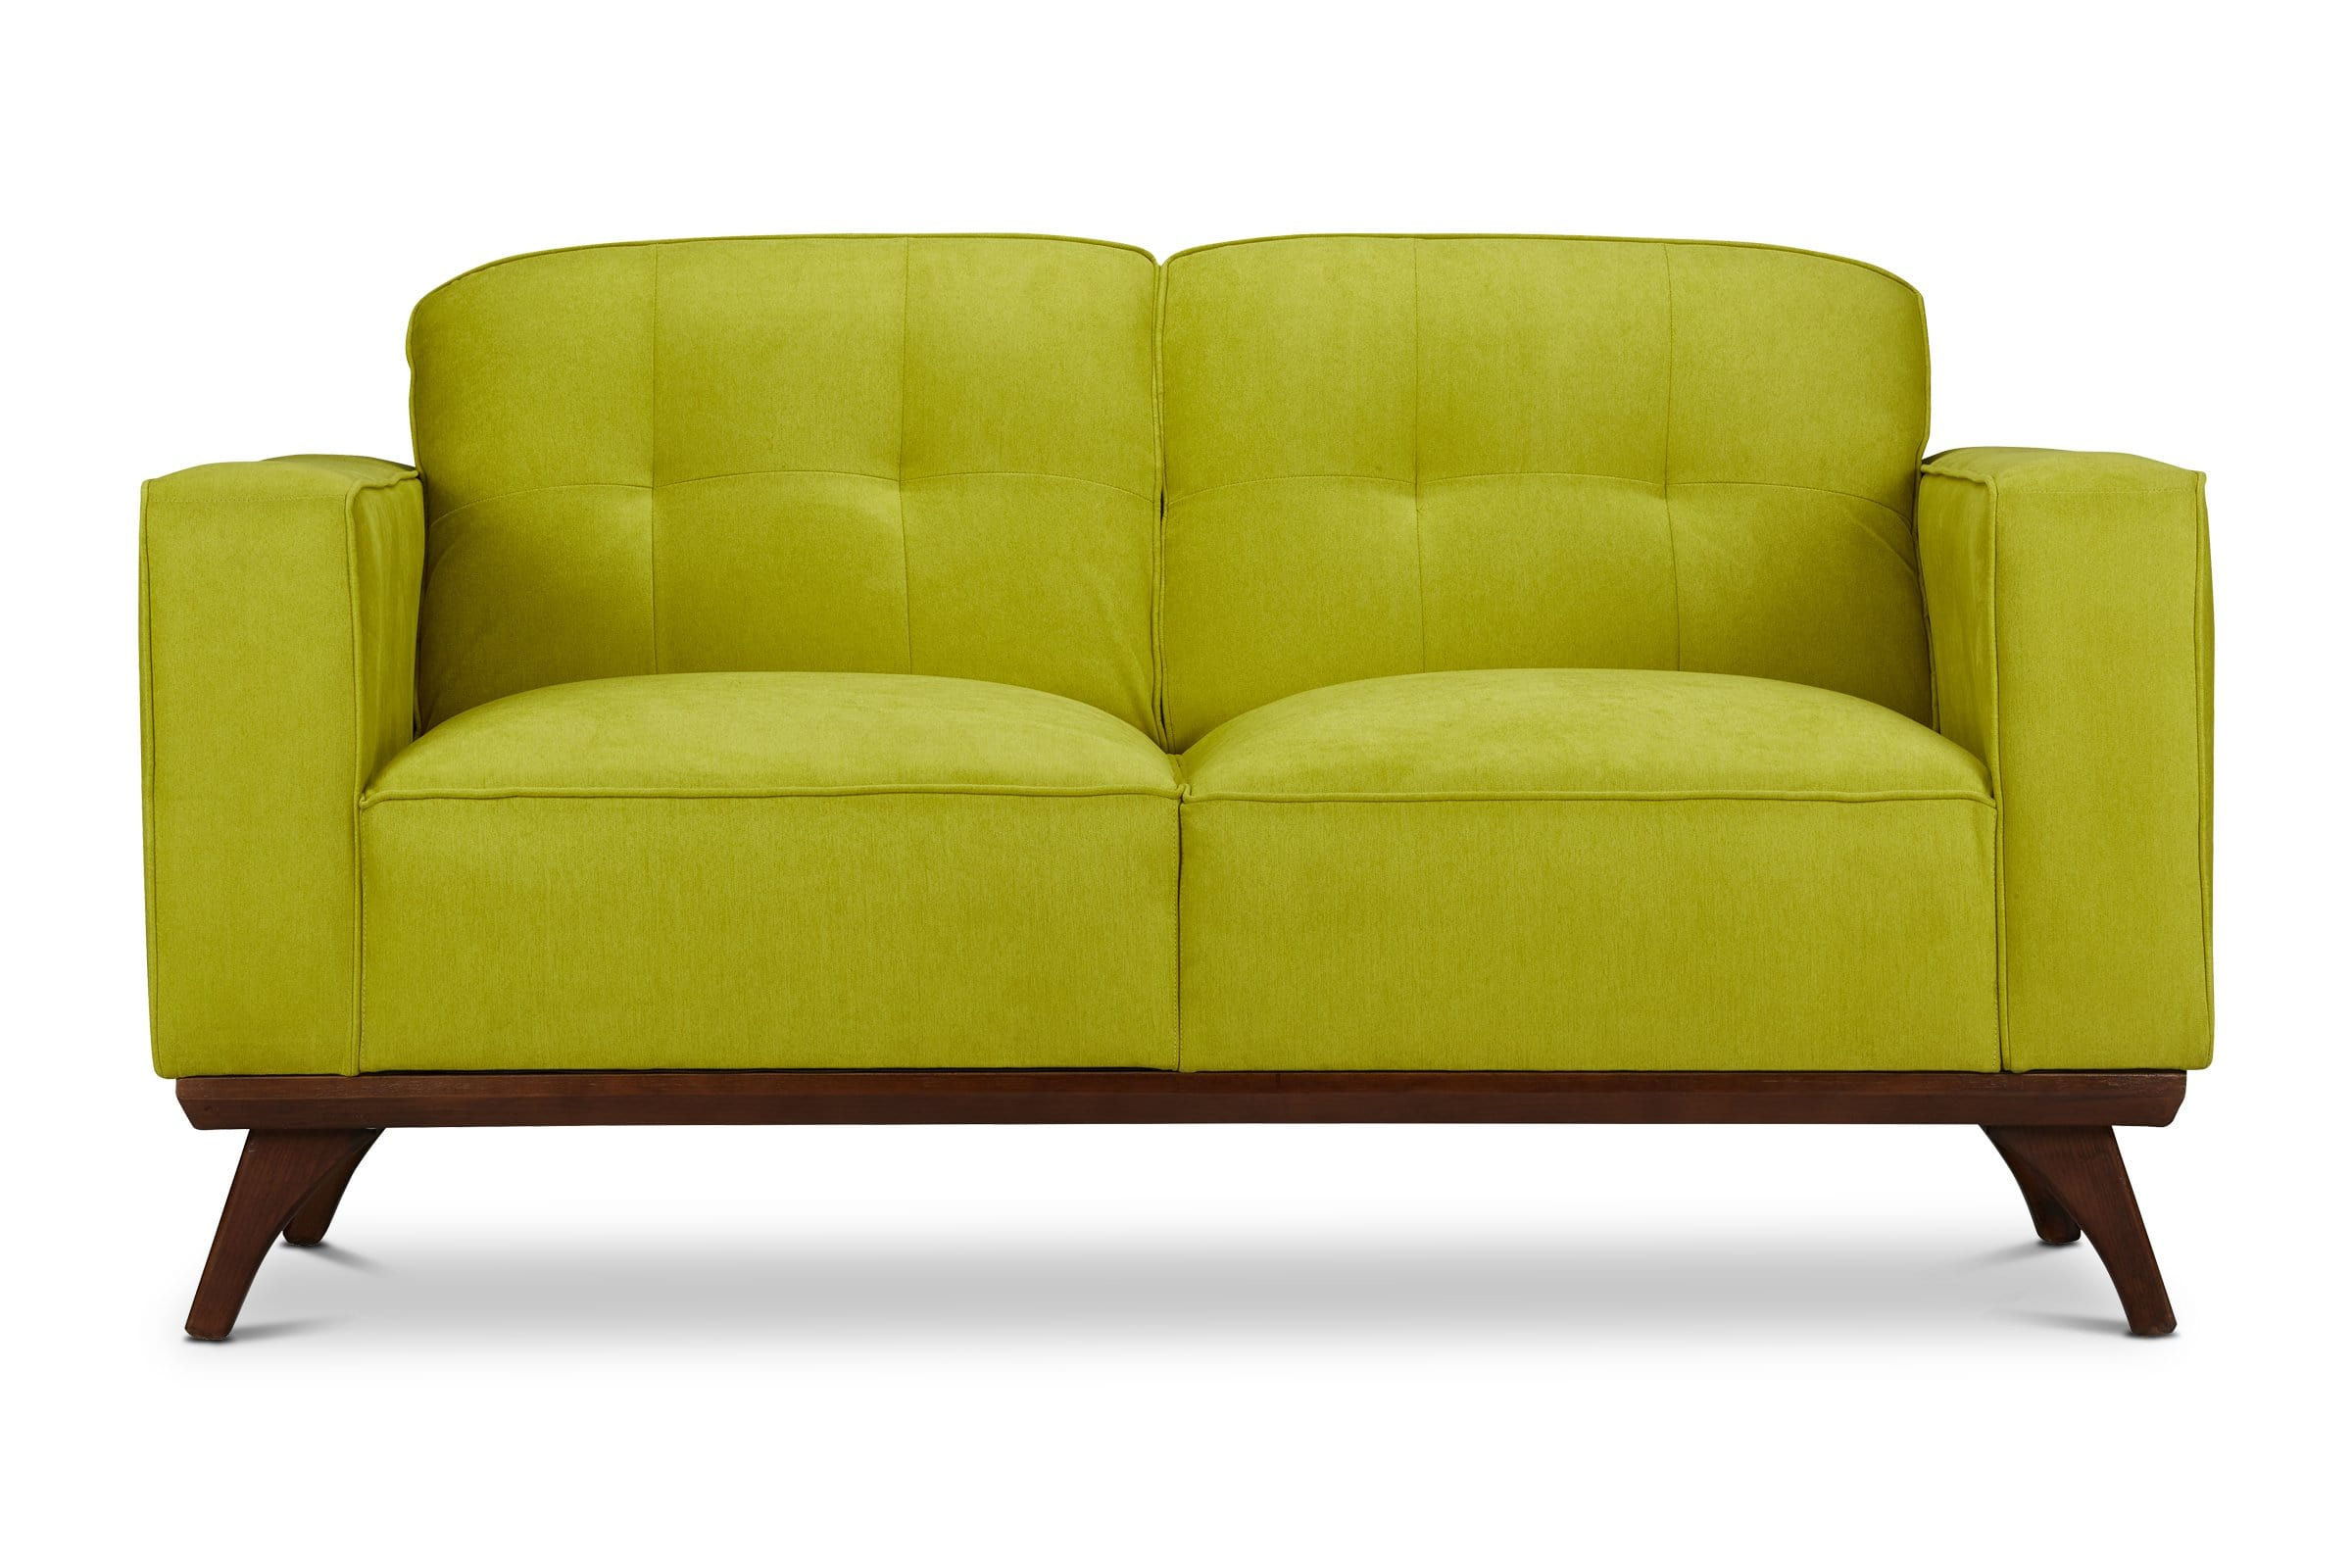 Zane Loveseat - Green - Modern Furniture - Sold by Apt2B - Green - Small Space Modern Couch Made in the USA - Sold by Apt2B